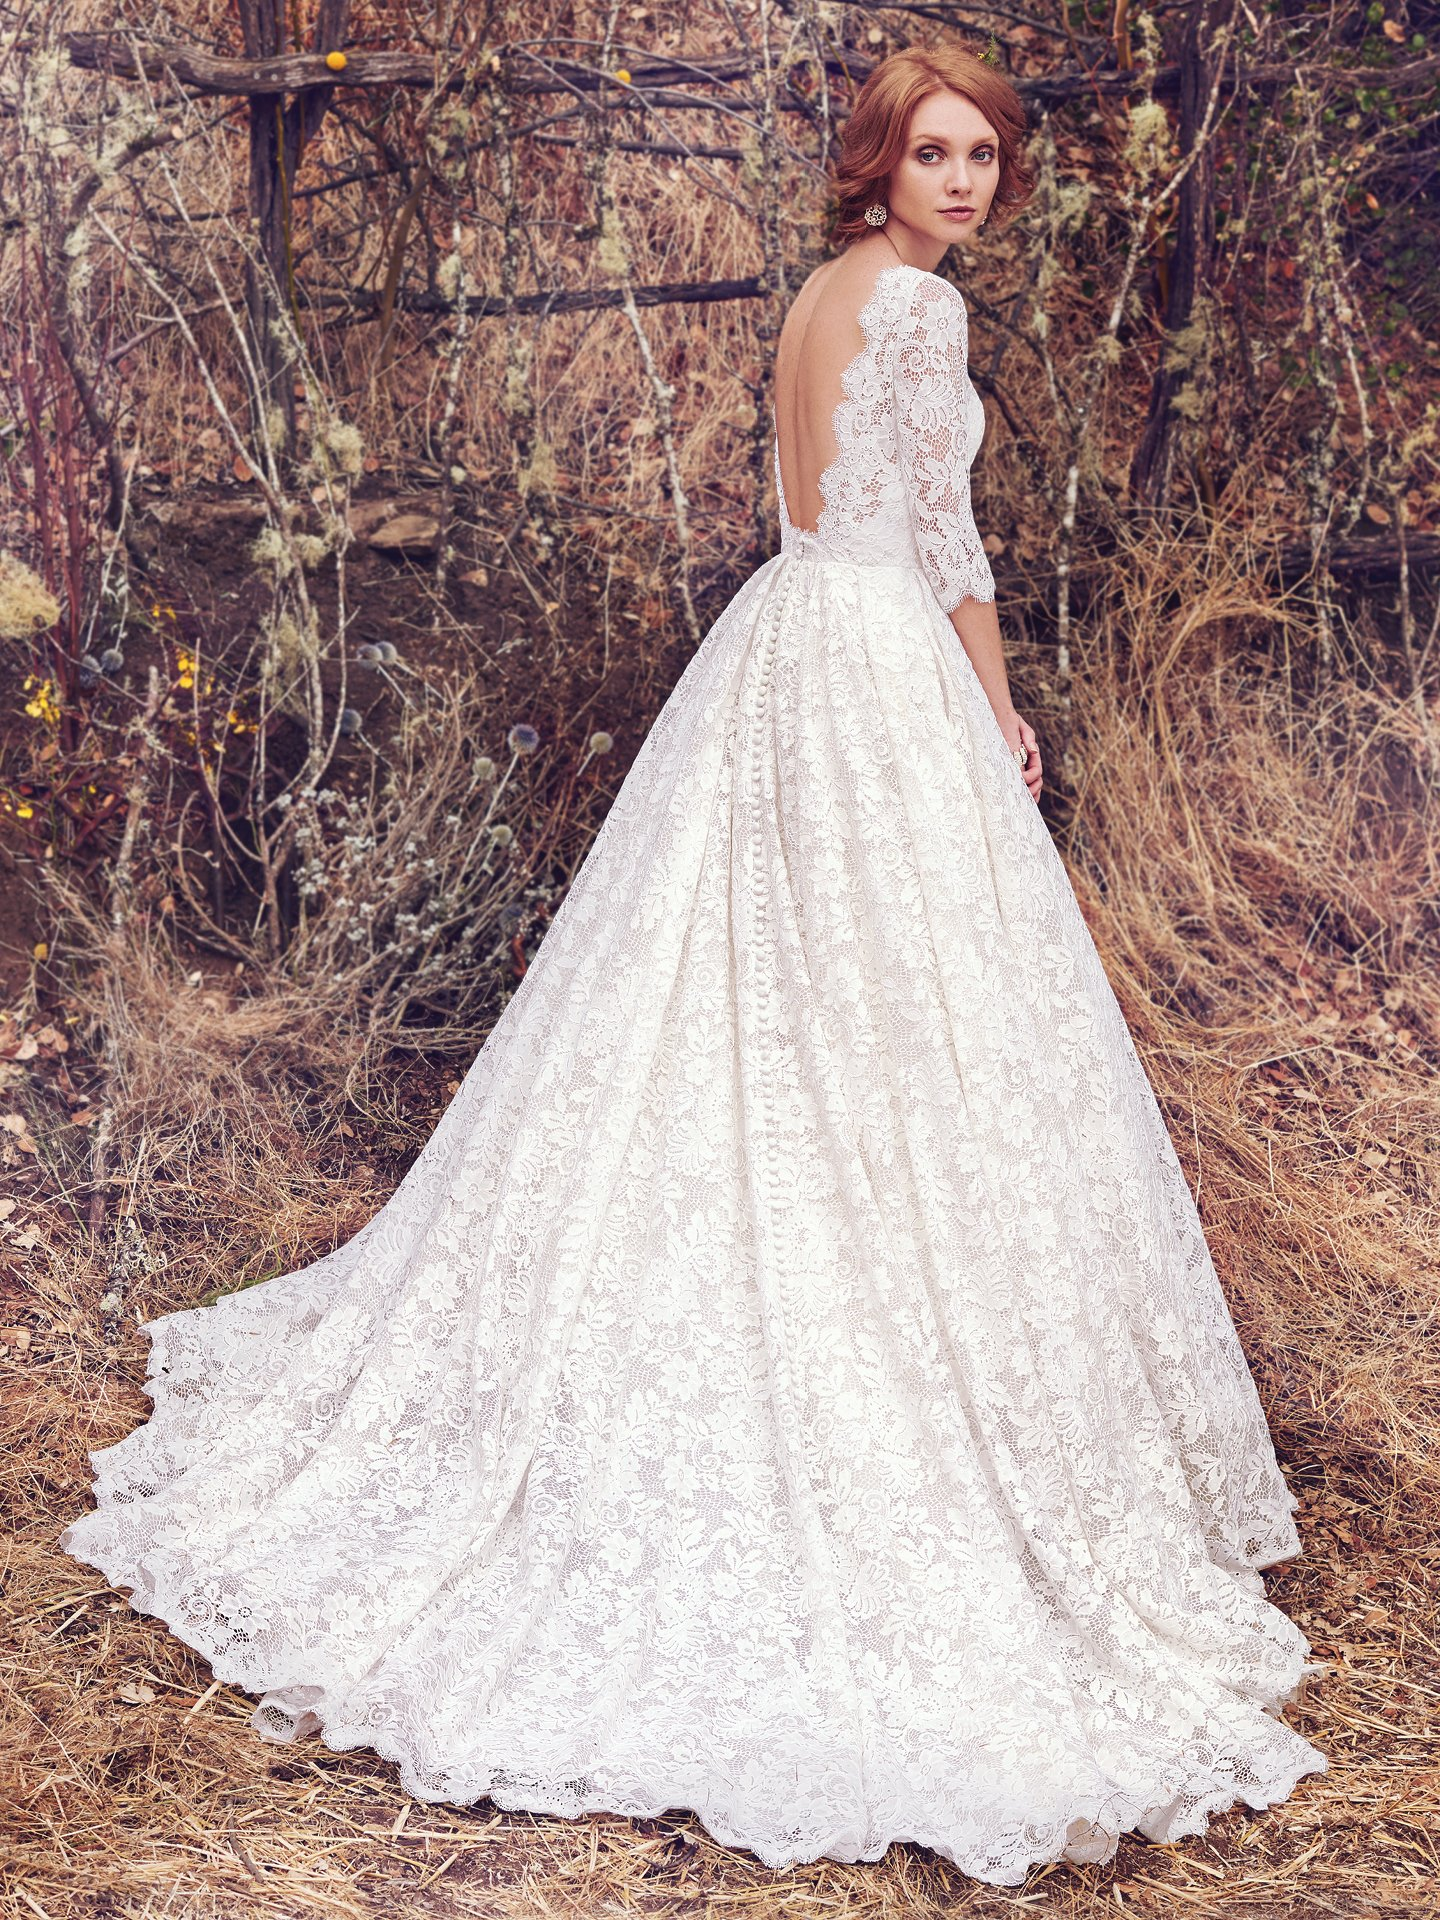 Cordelia wedding dress with sleeves by Maggie Sottero. Modern Royalty: Wedding Dresses Inspired by the Royal Engagement